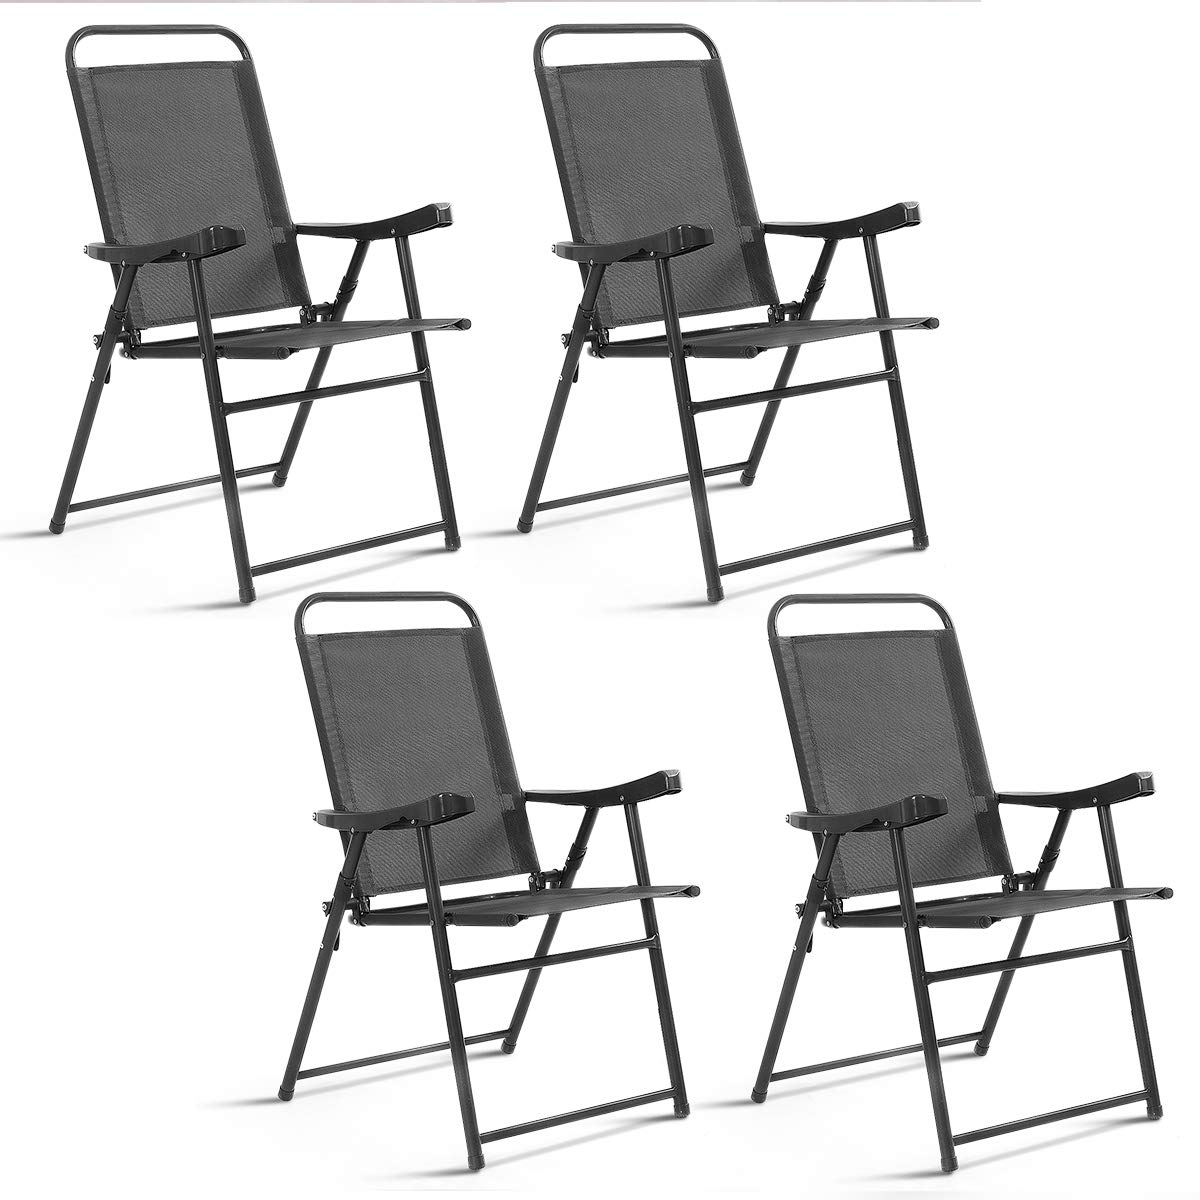 Giantex 4 Packs Folding Chairs Patio Sling Chairs Outdoor Portable Chairs Furniture Camping Pool Beach Deck Dining Chairs with Armrest by Giantex